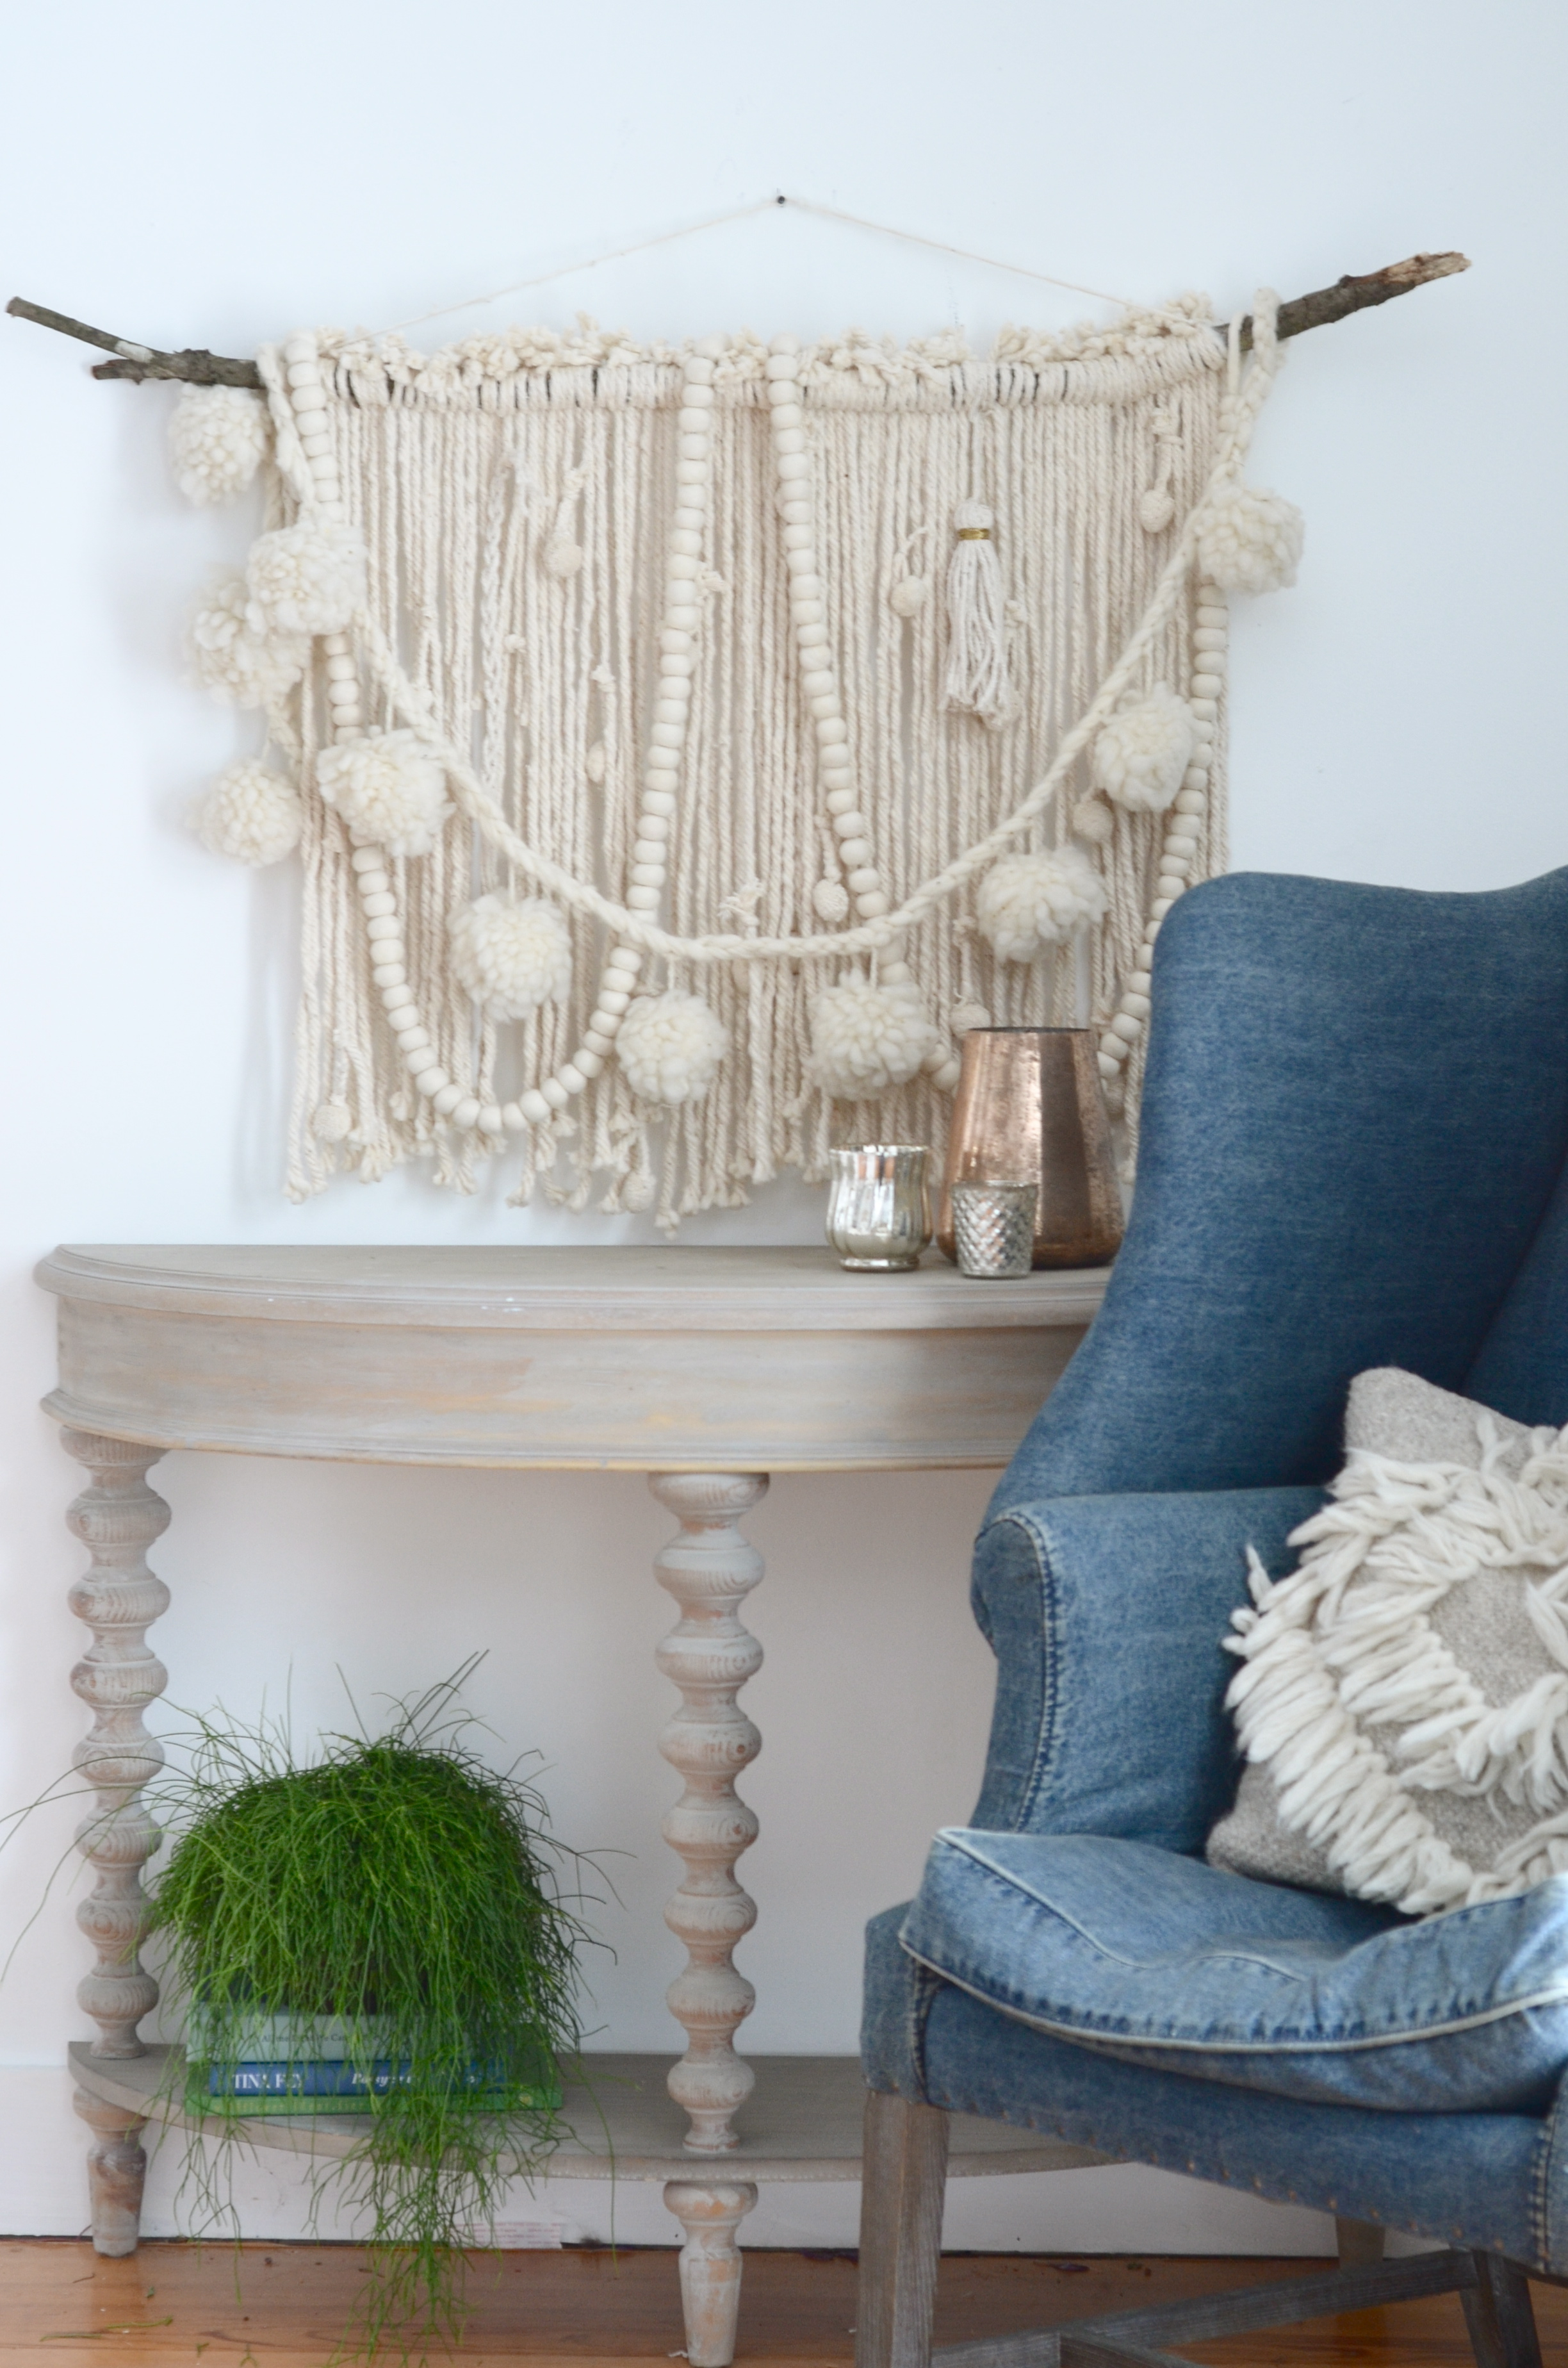 Make A Diy Wall Hanging Starting With A Mop